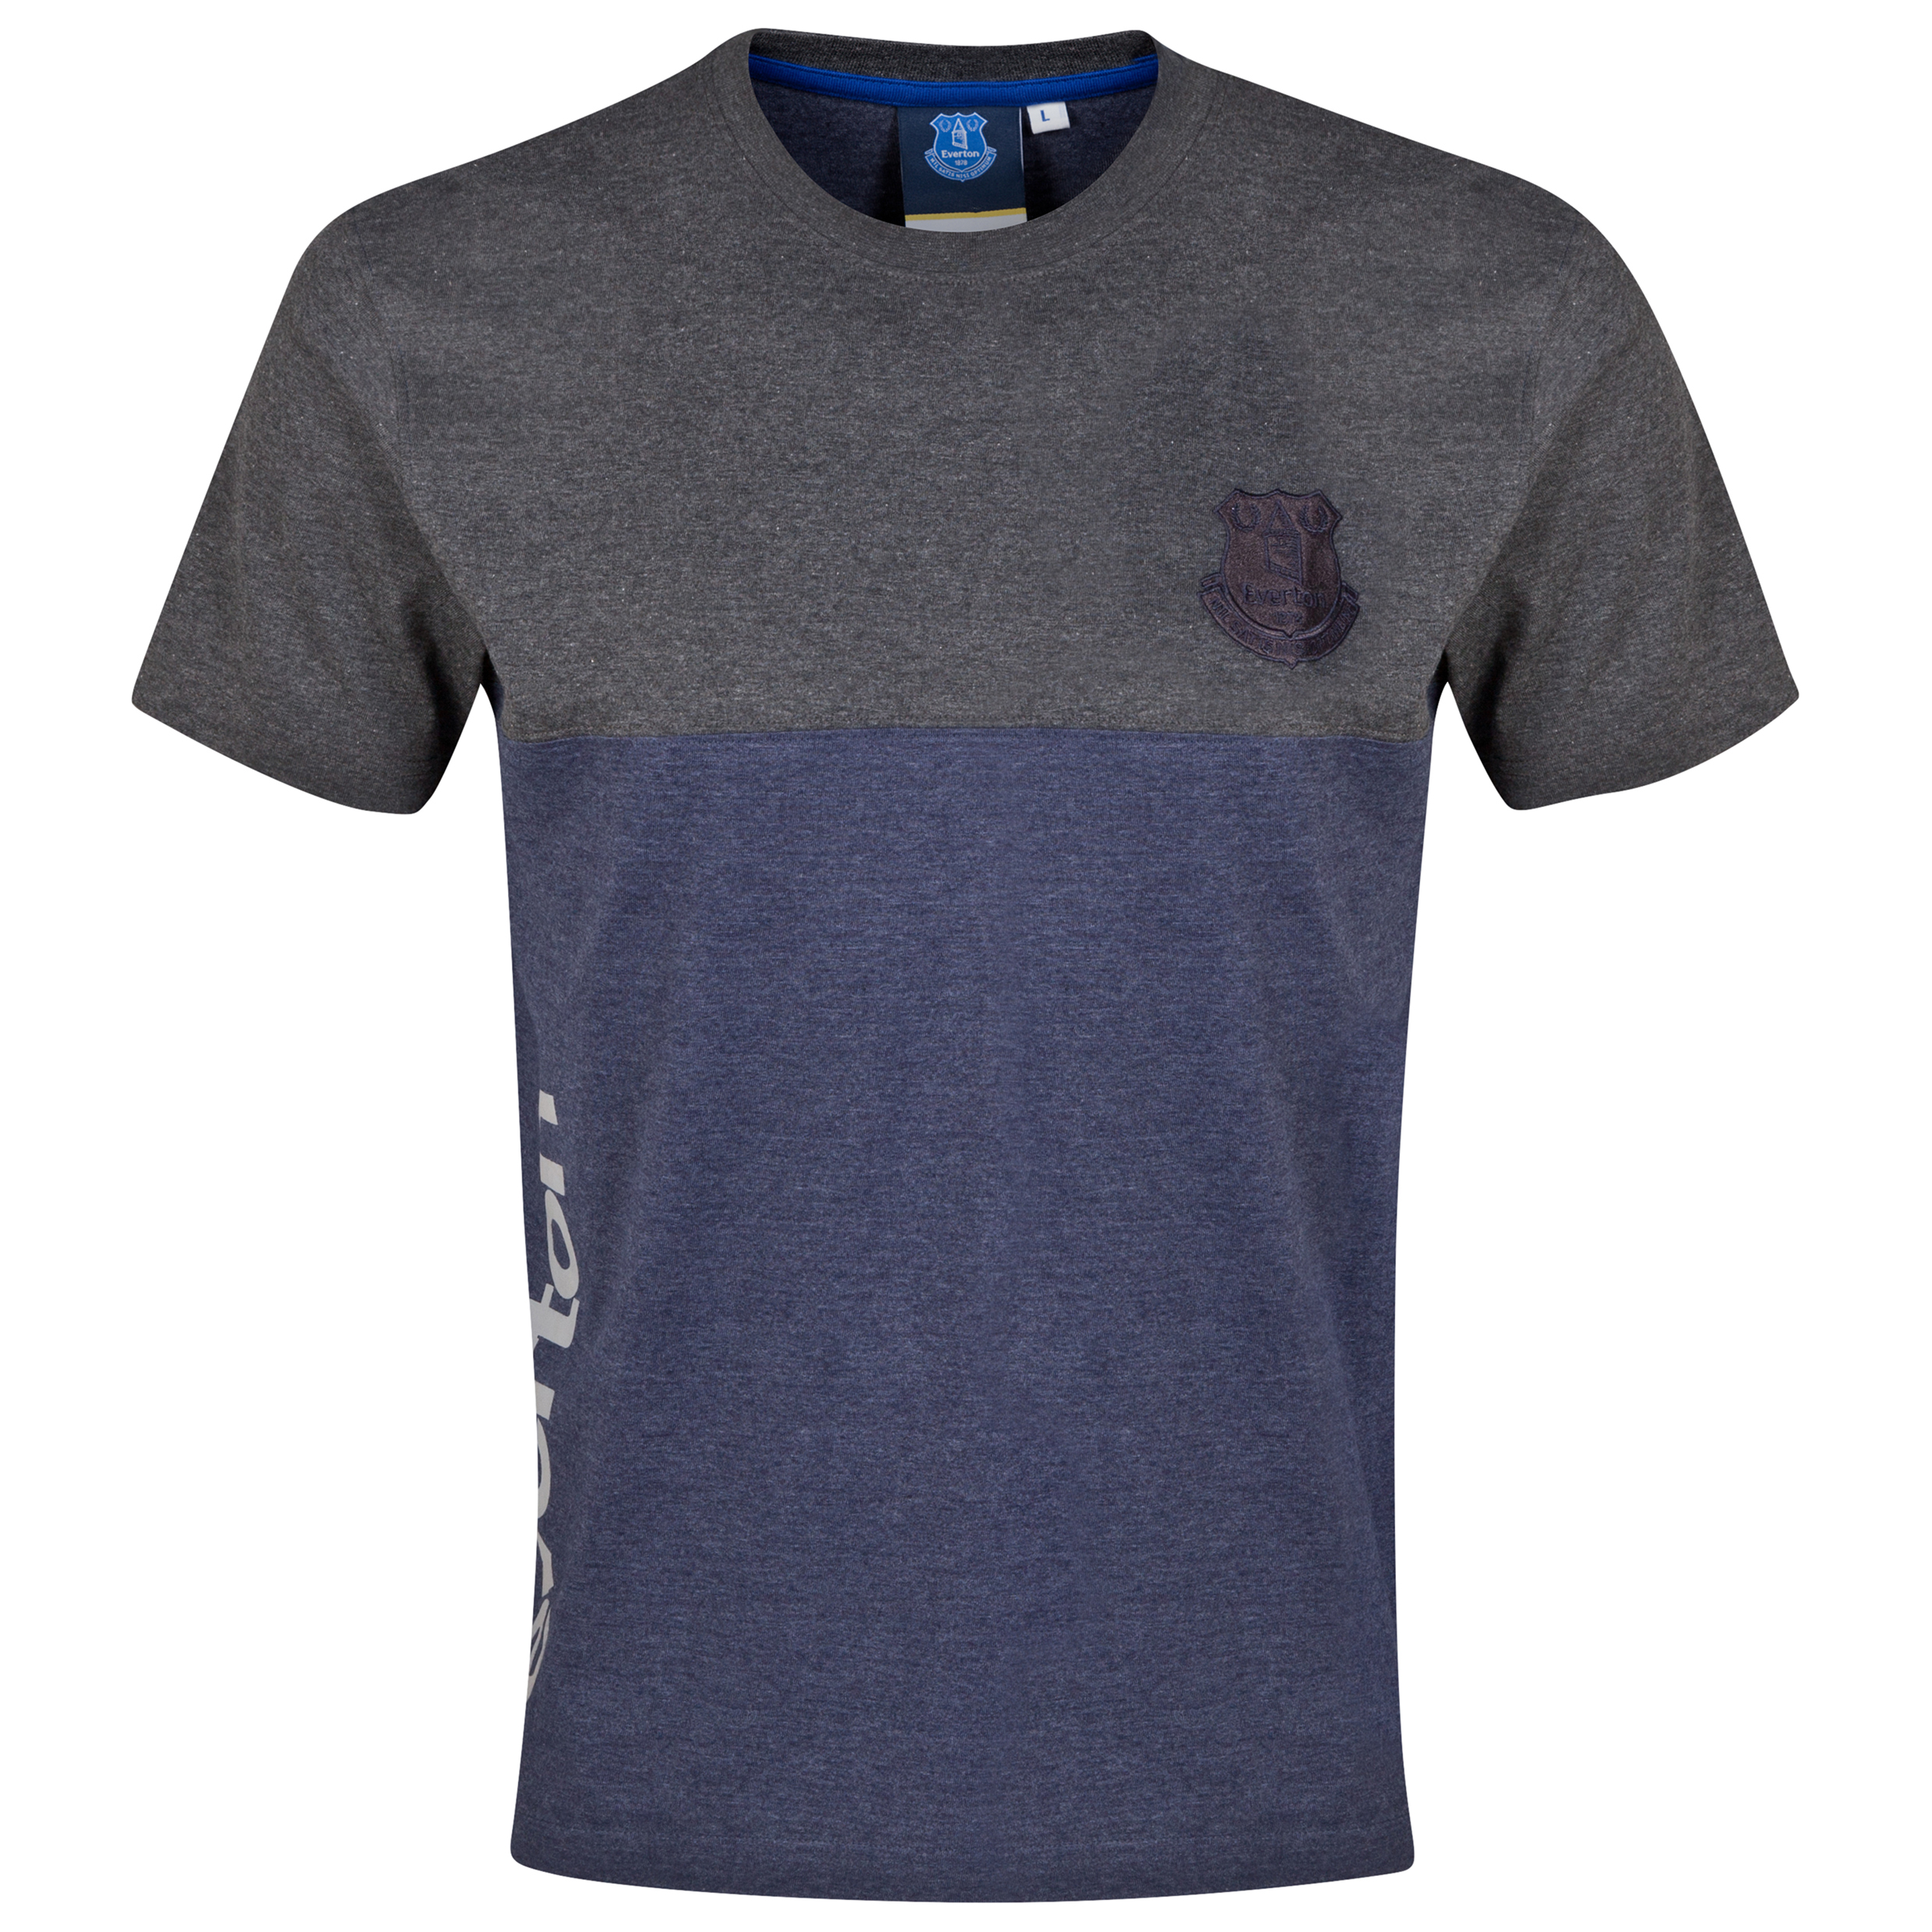 Everton Essential T-Shirt - Vintage Marl - Mens